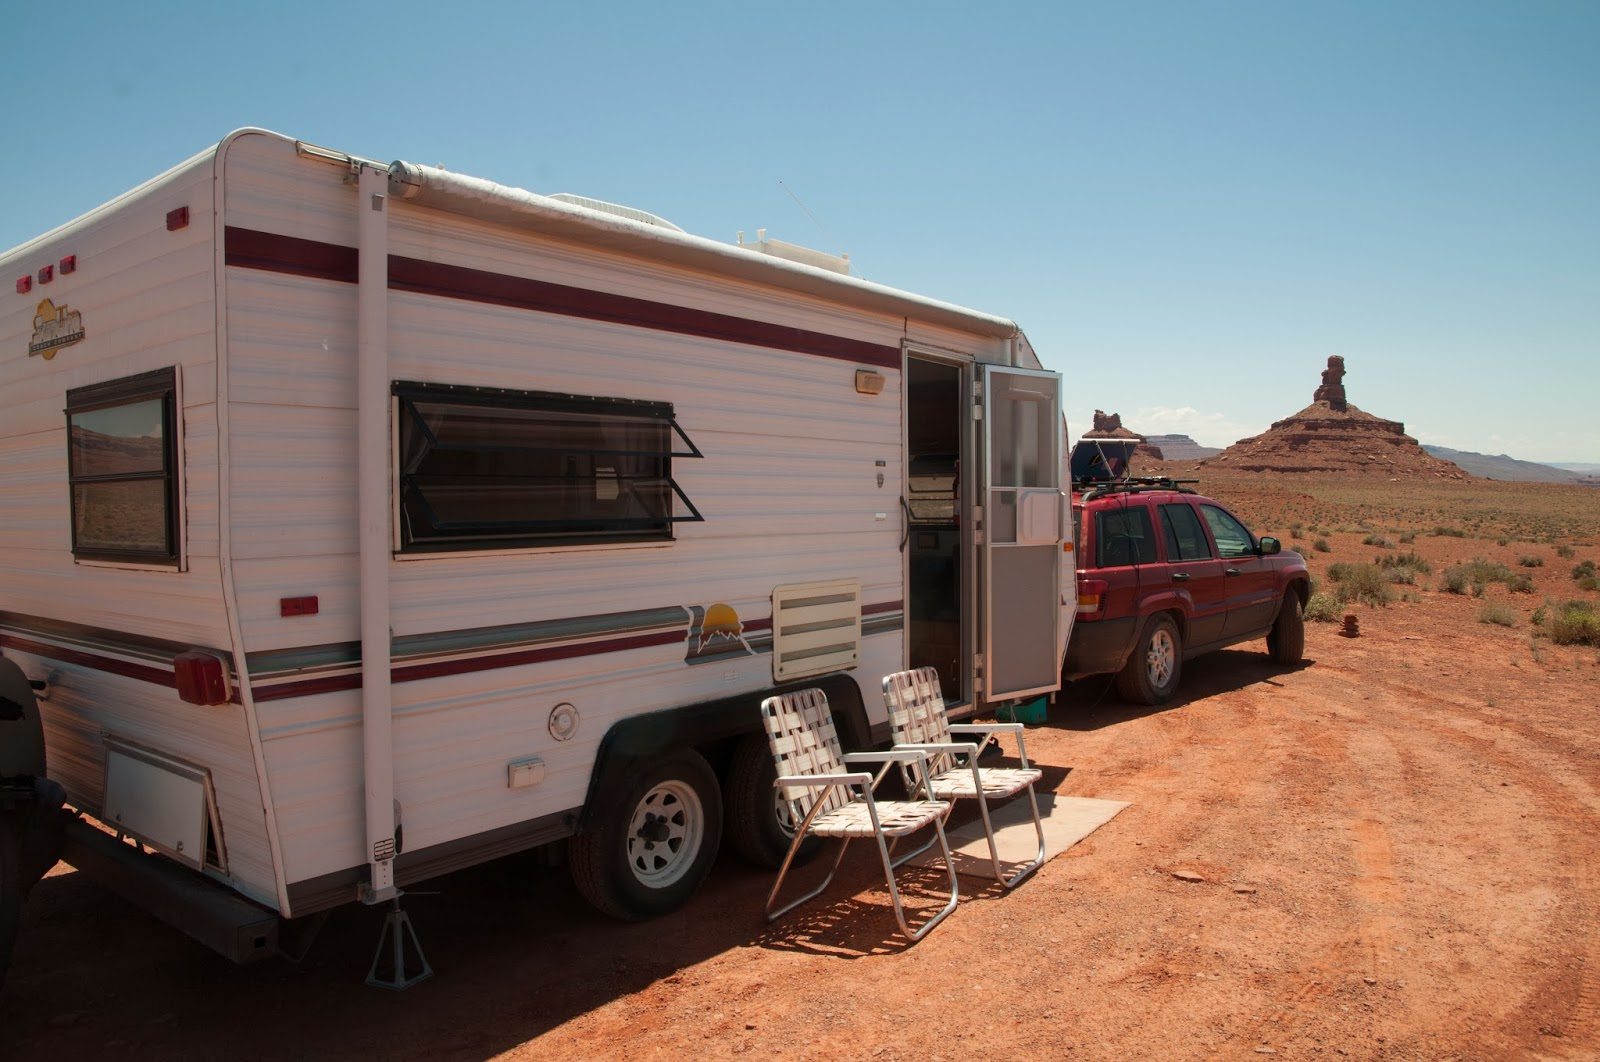 A view of a travel trailer at a campsite in Southern Utah, with a spire visible in the background